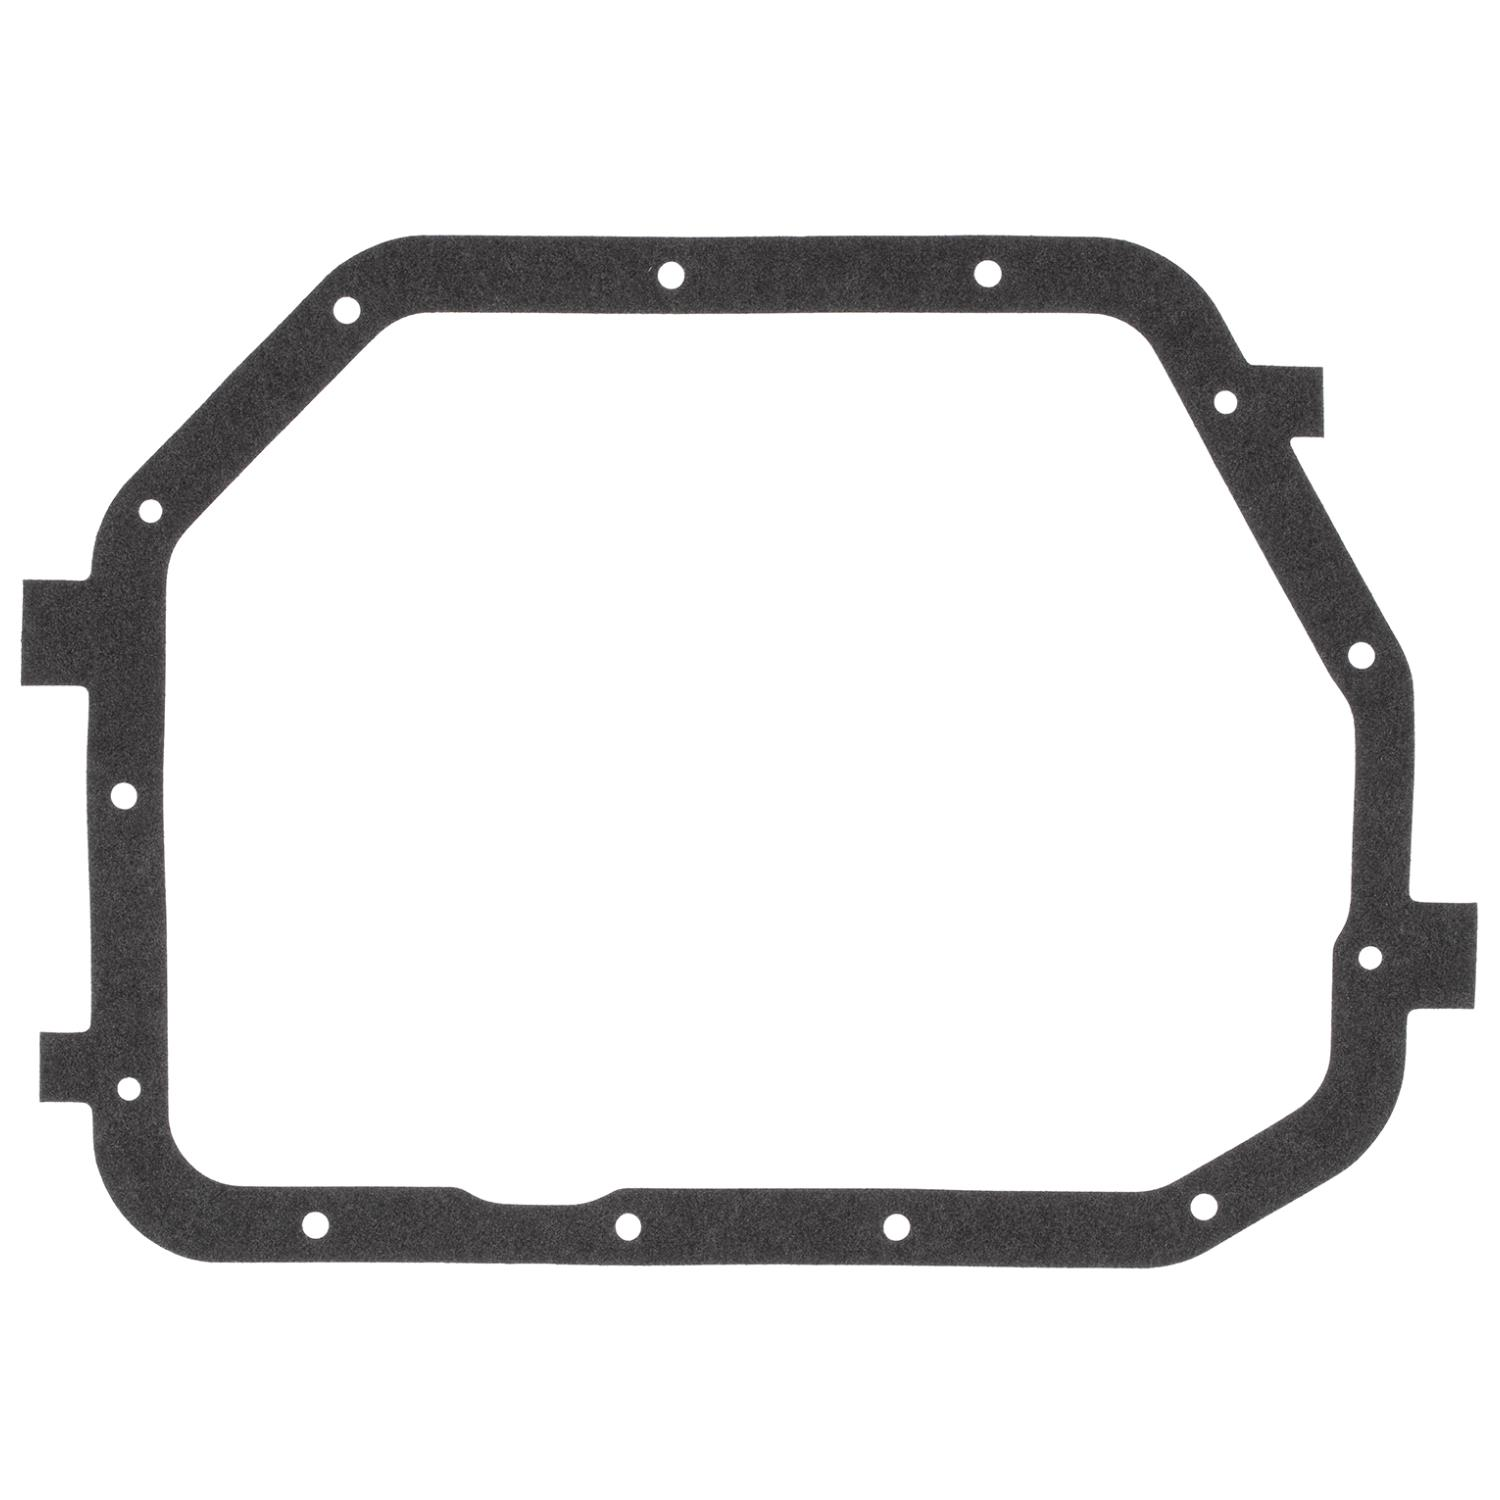 ATP Automotive EG-10 Oil Pan Gasket